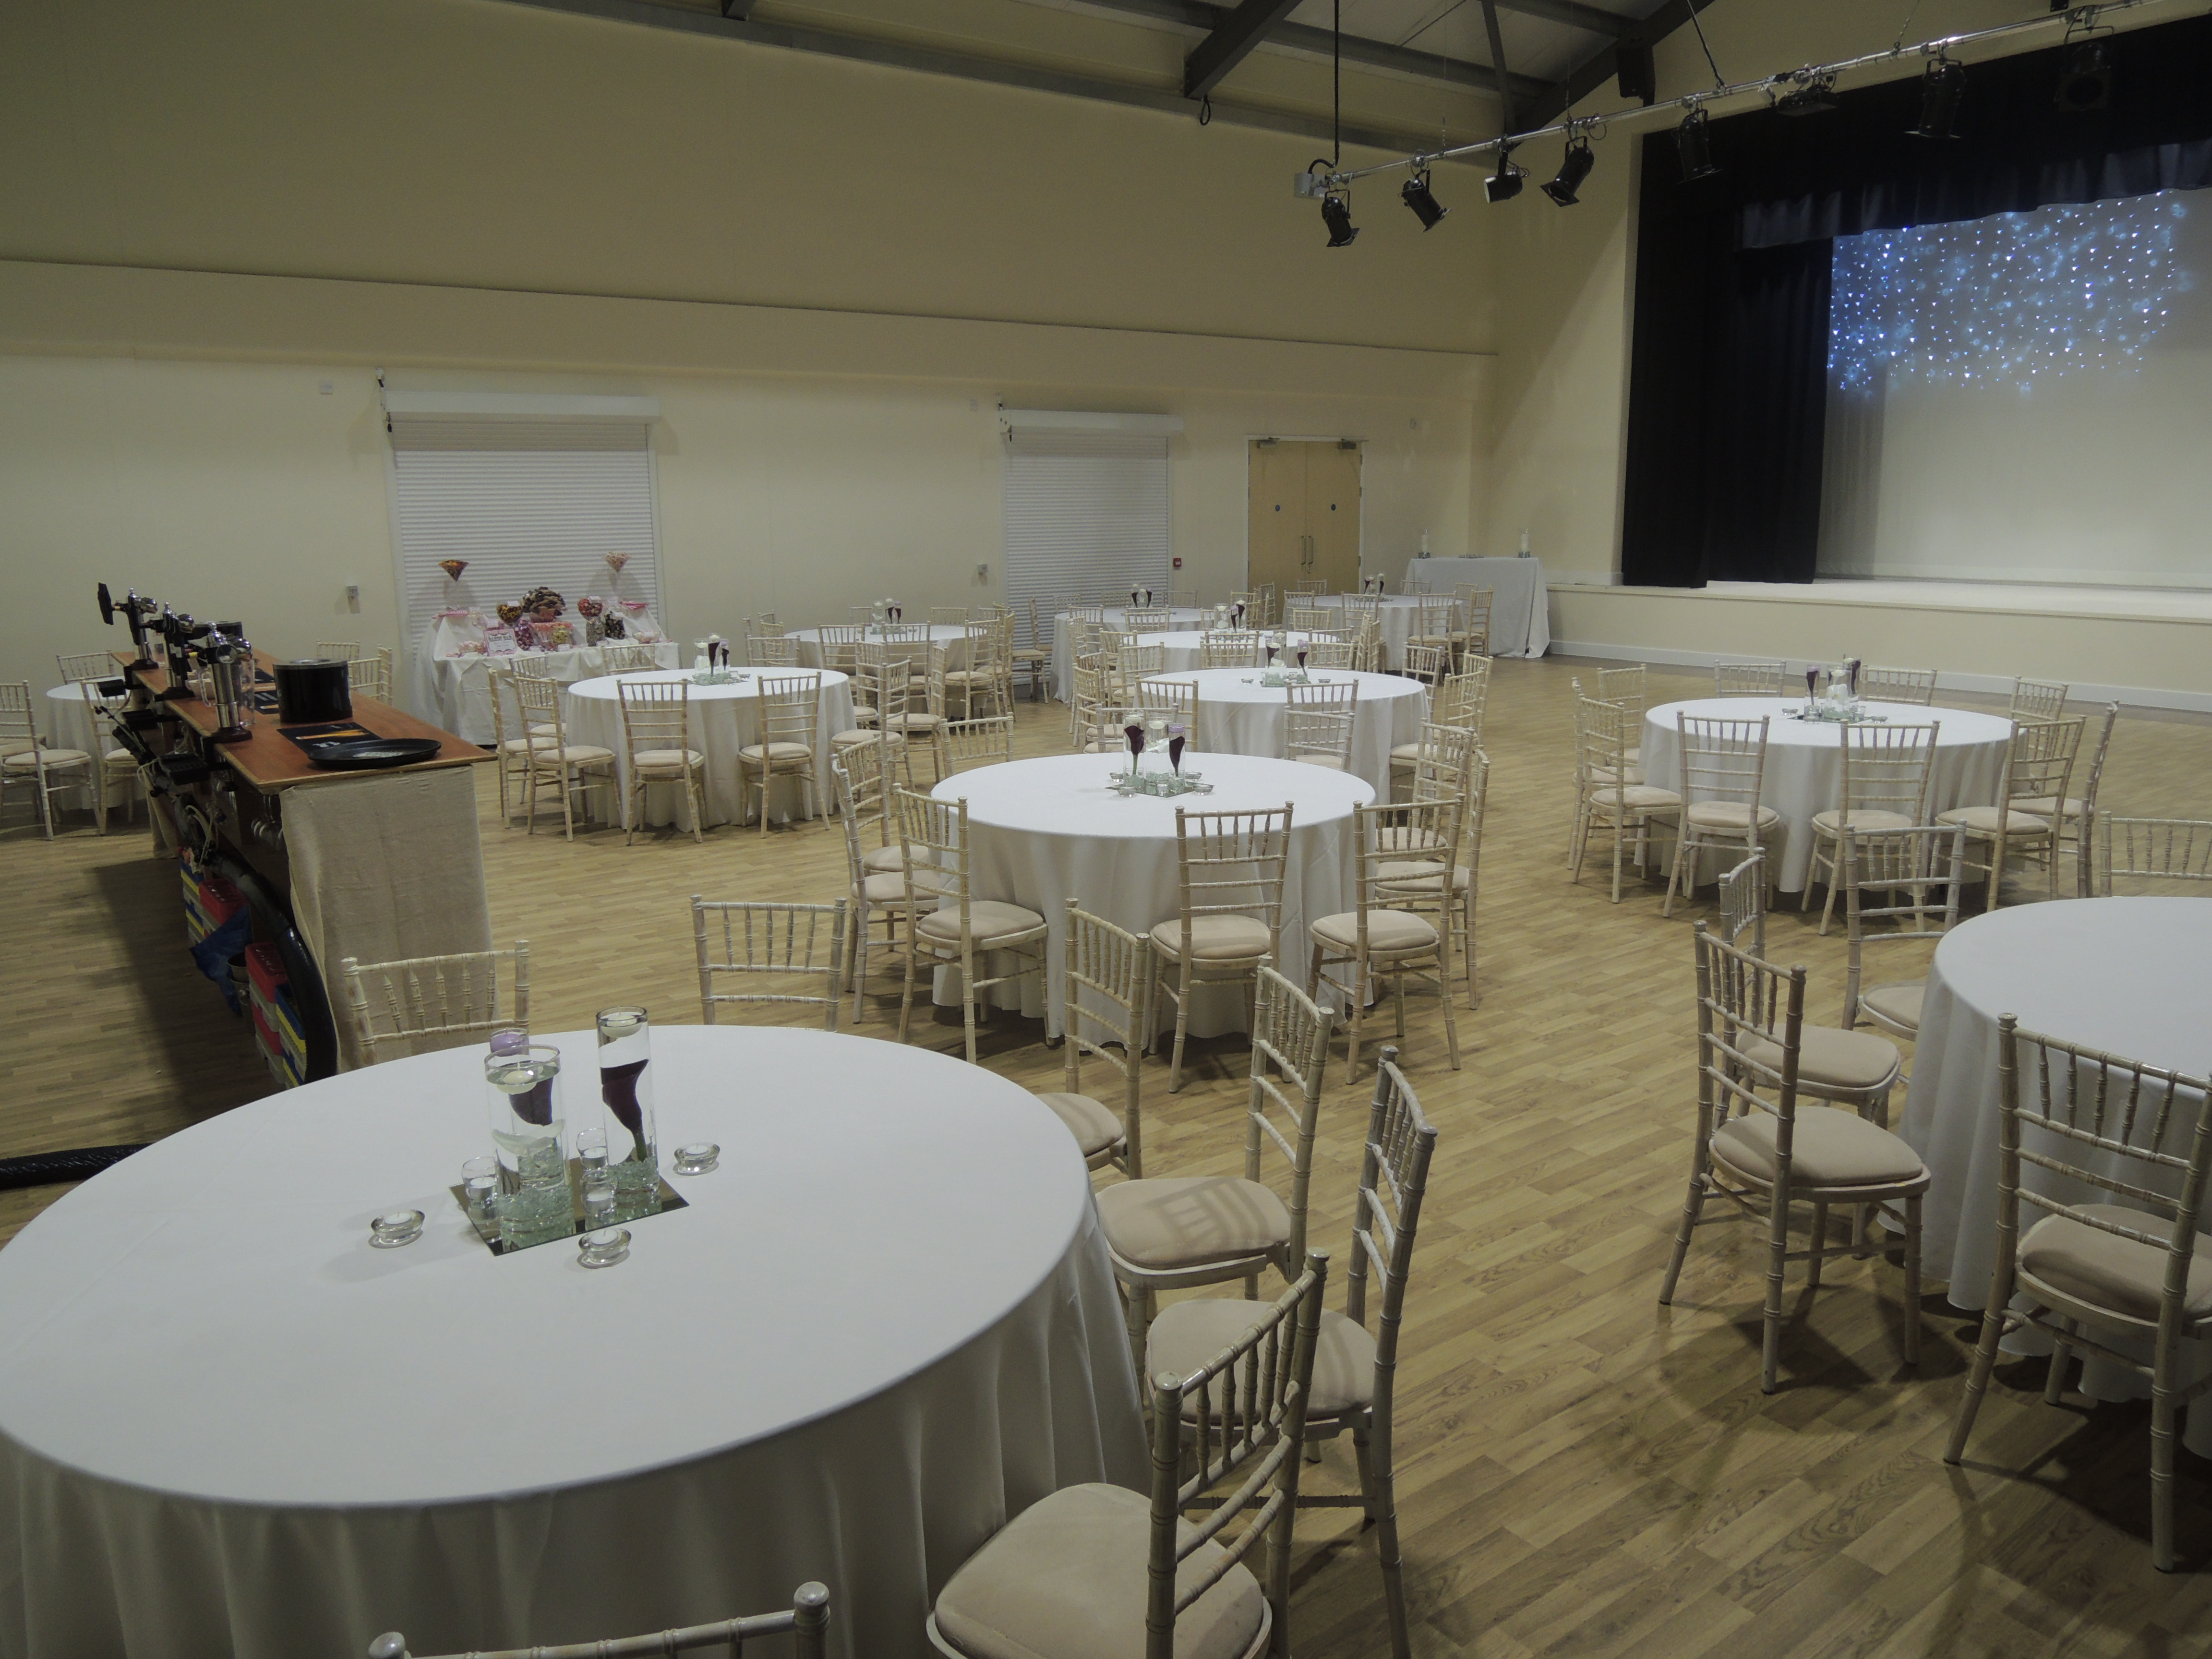 Main Hall set up with tables and bar